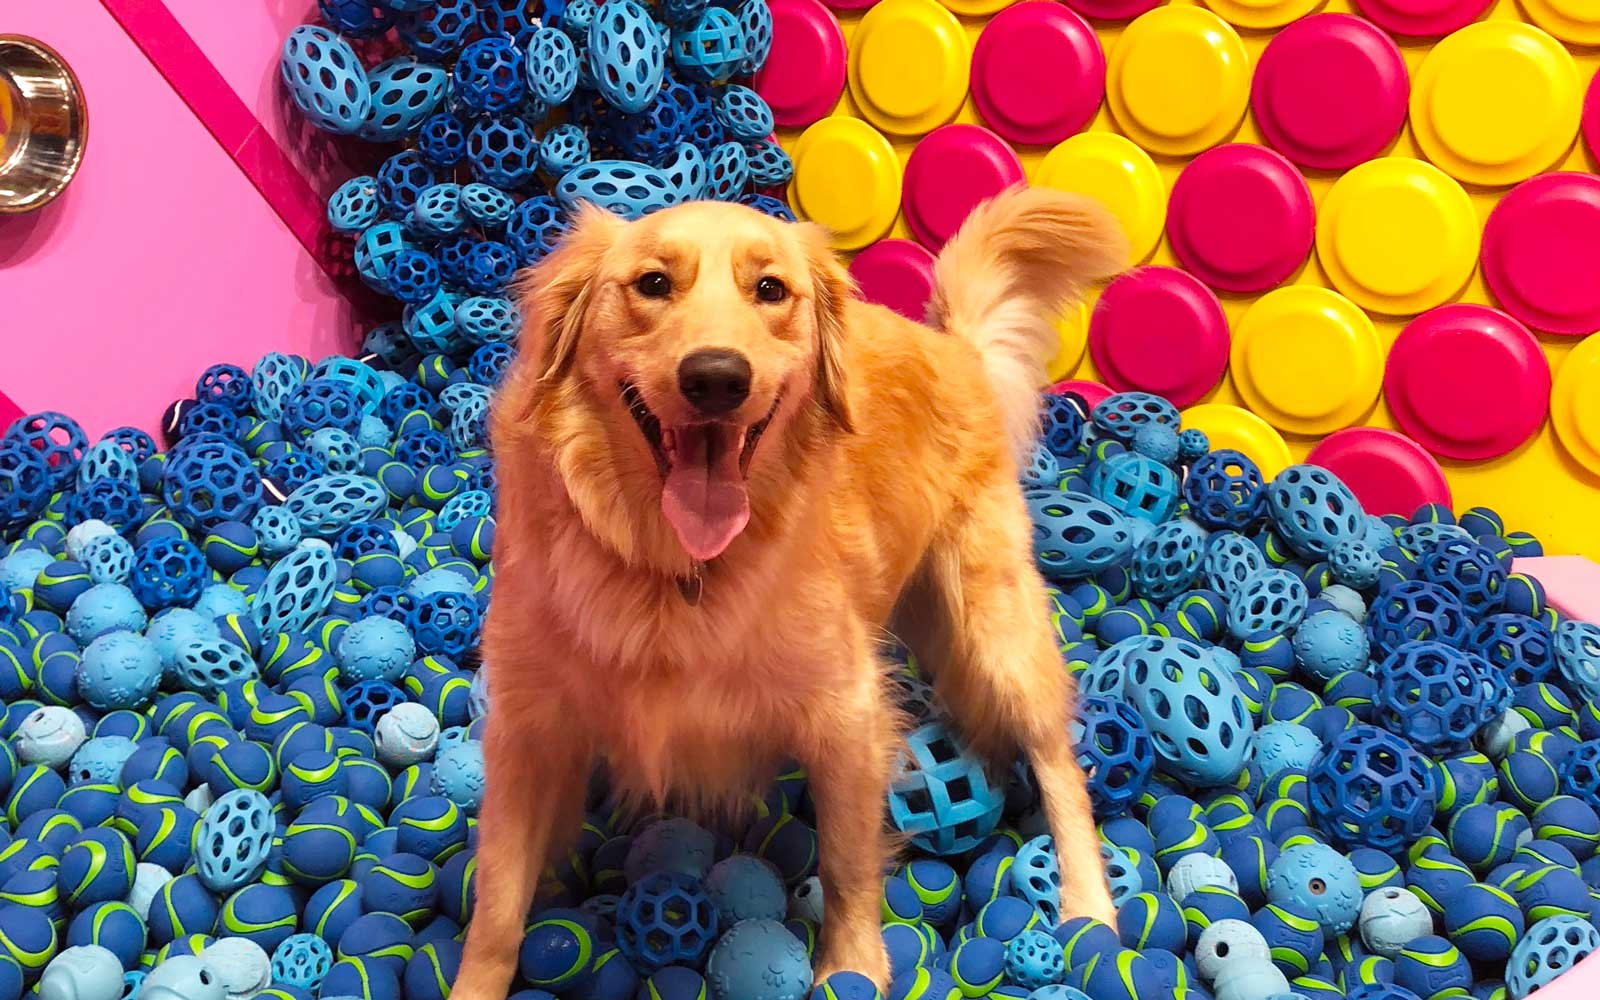 Golden retriever in a pile of tennis balls at Human's Best Friend event in New York